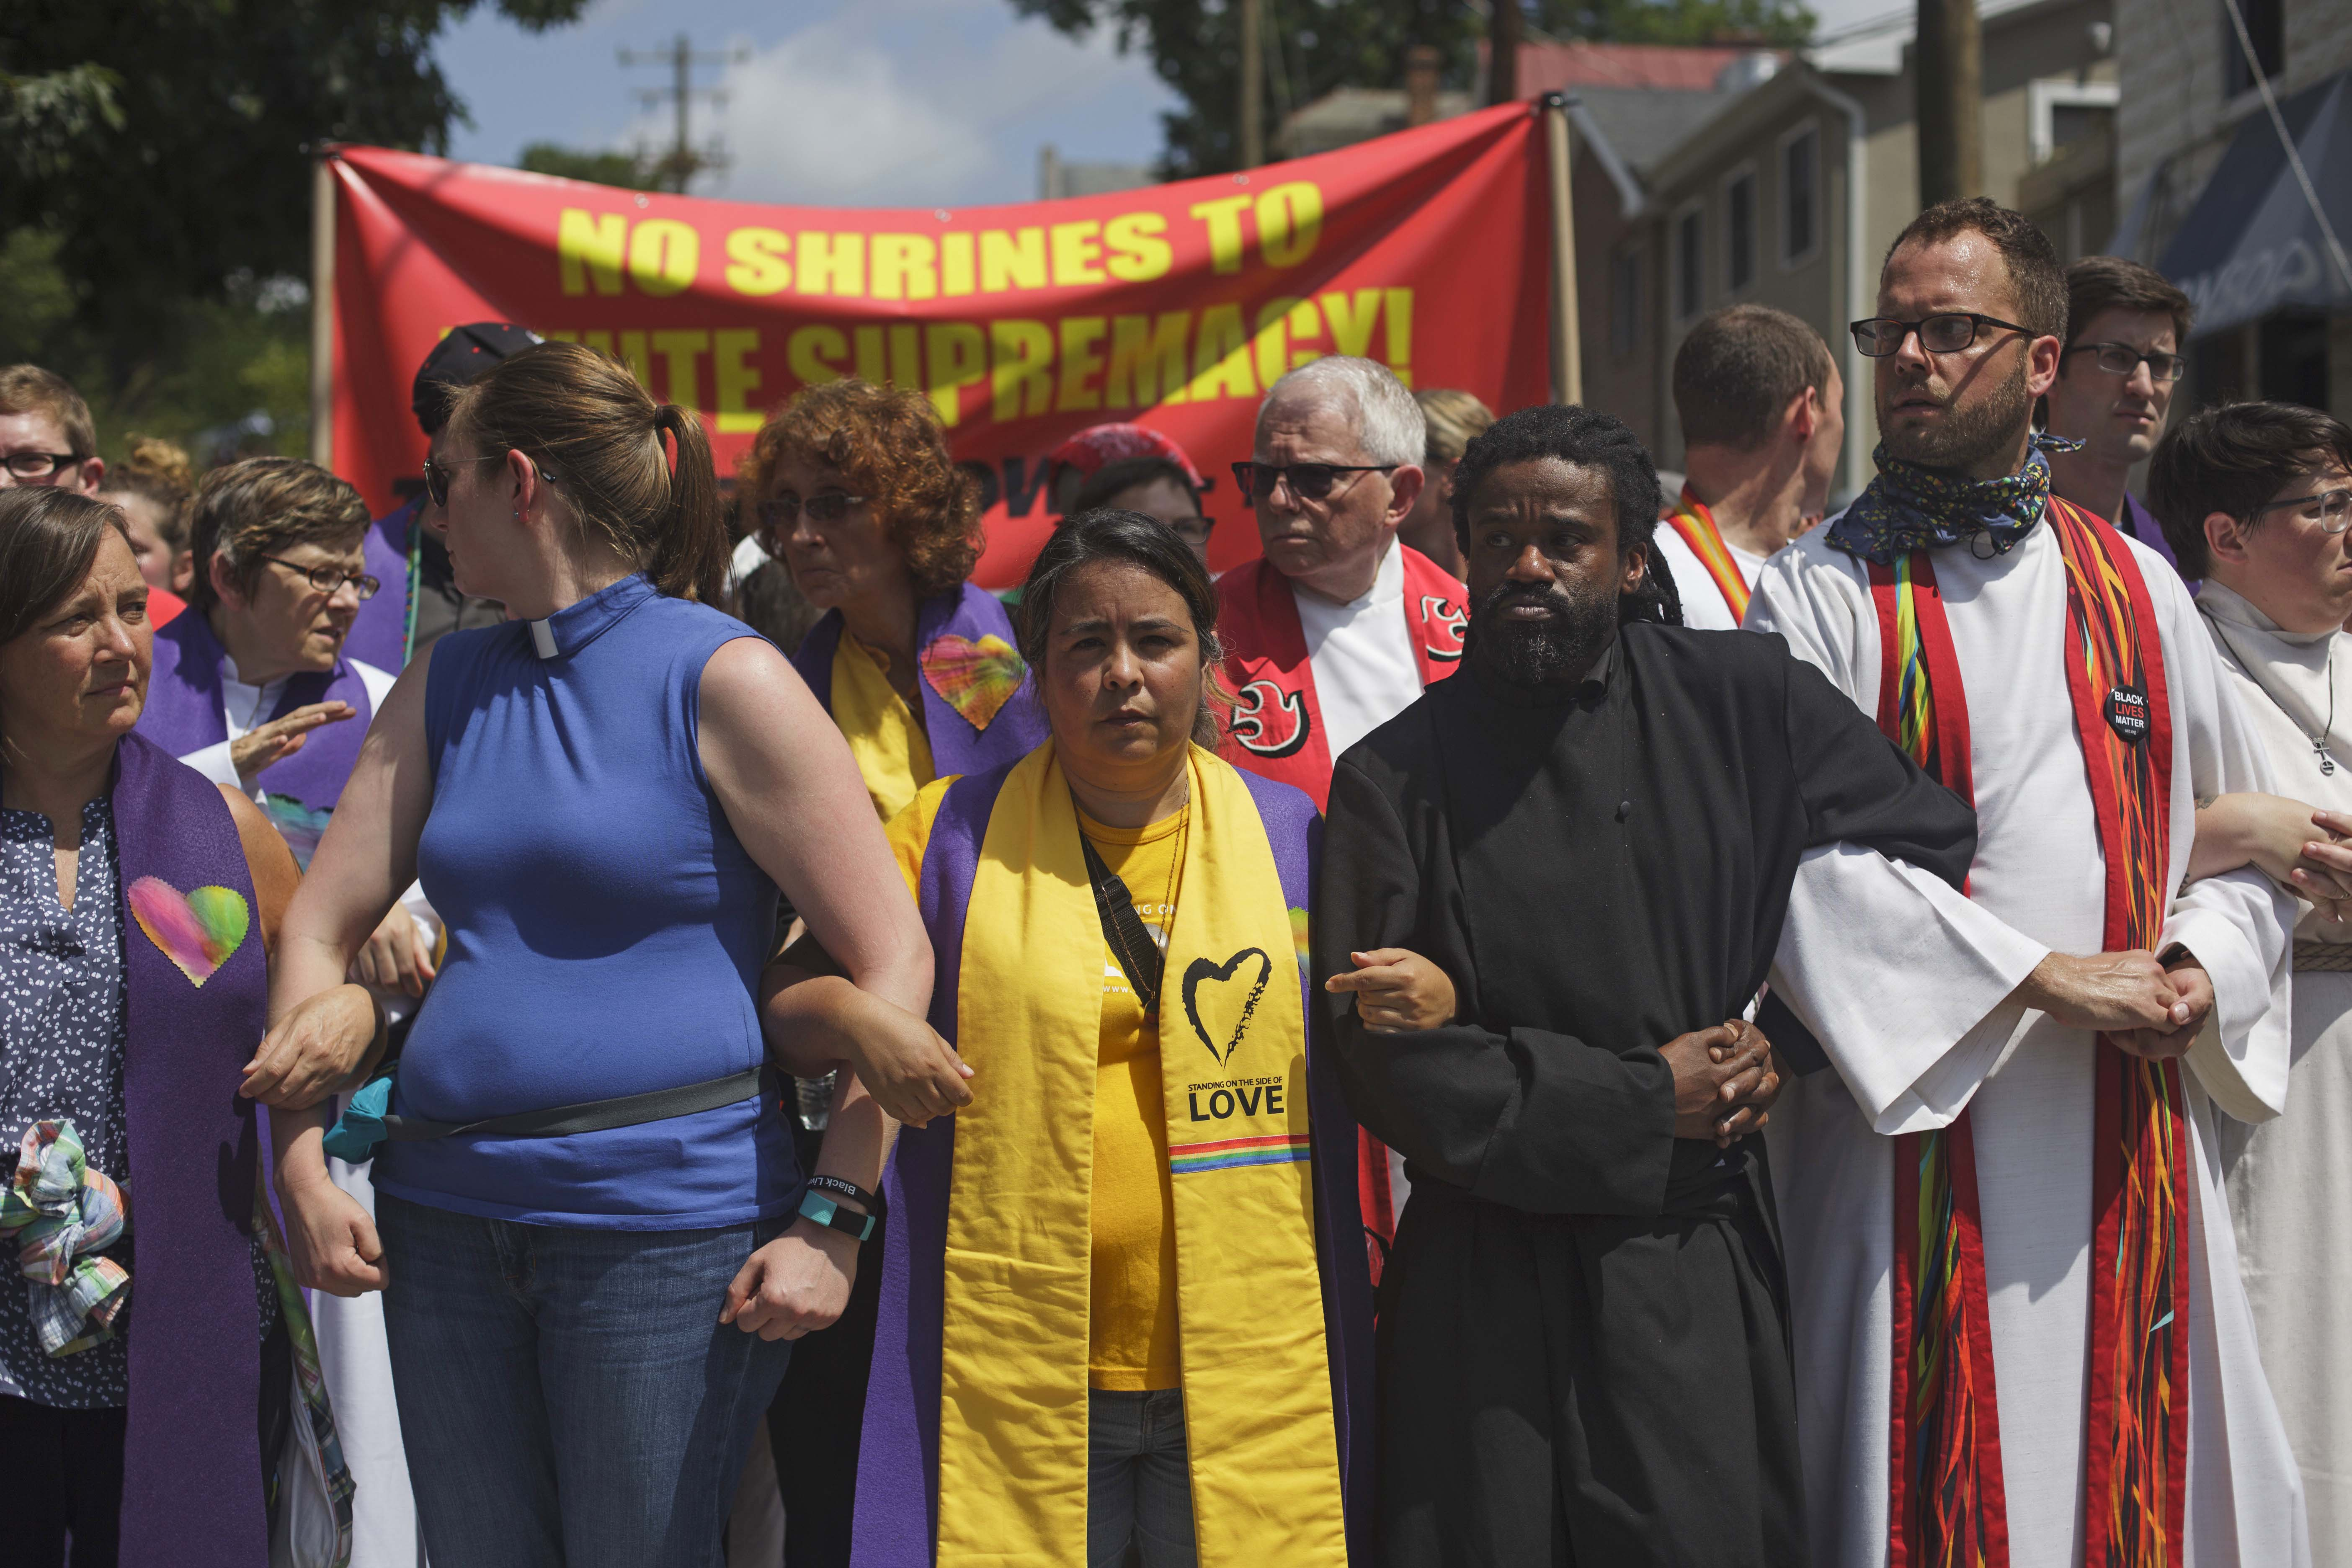 A interfaith group of clergy locked arms on the outskirts of the Unite The Right rally to stand in opposition of white supremacy. August  12, 2017, Charlottesville, VA. (Shay Horse/GroundTruth)